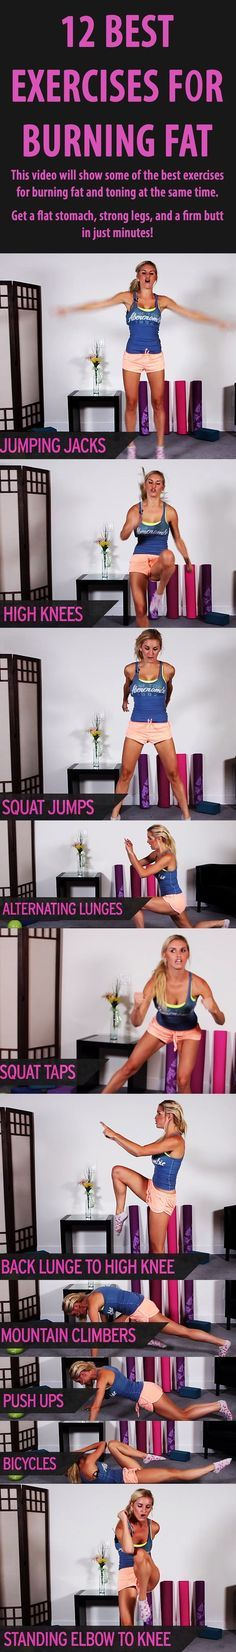 Calorie burning workout: 12 absolutely best exercises for burning fat. Long ways away from these exercises